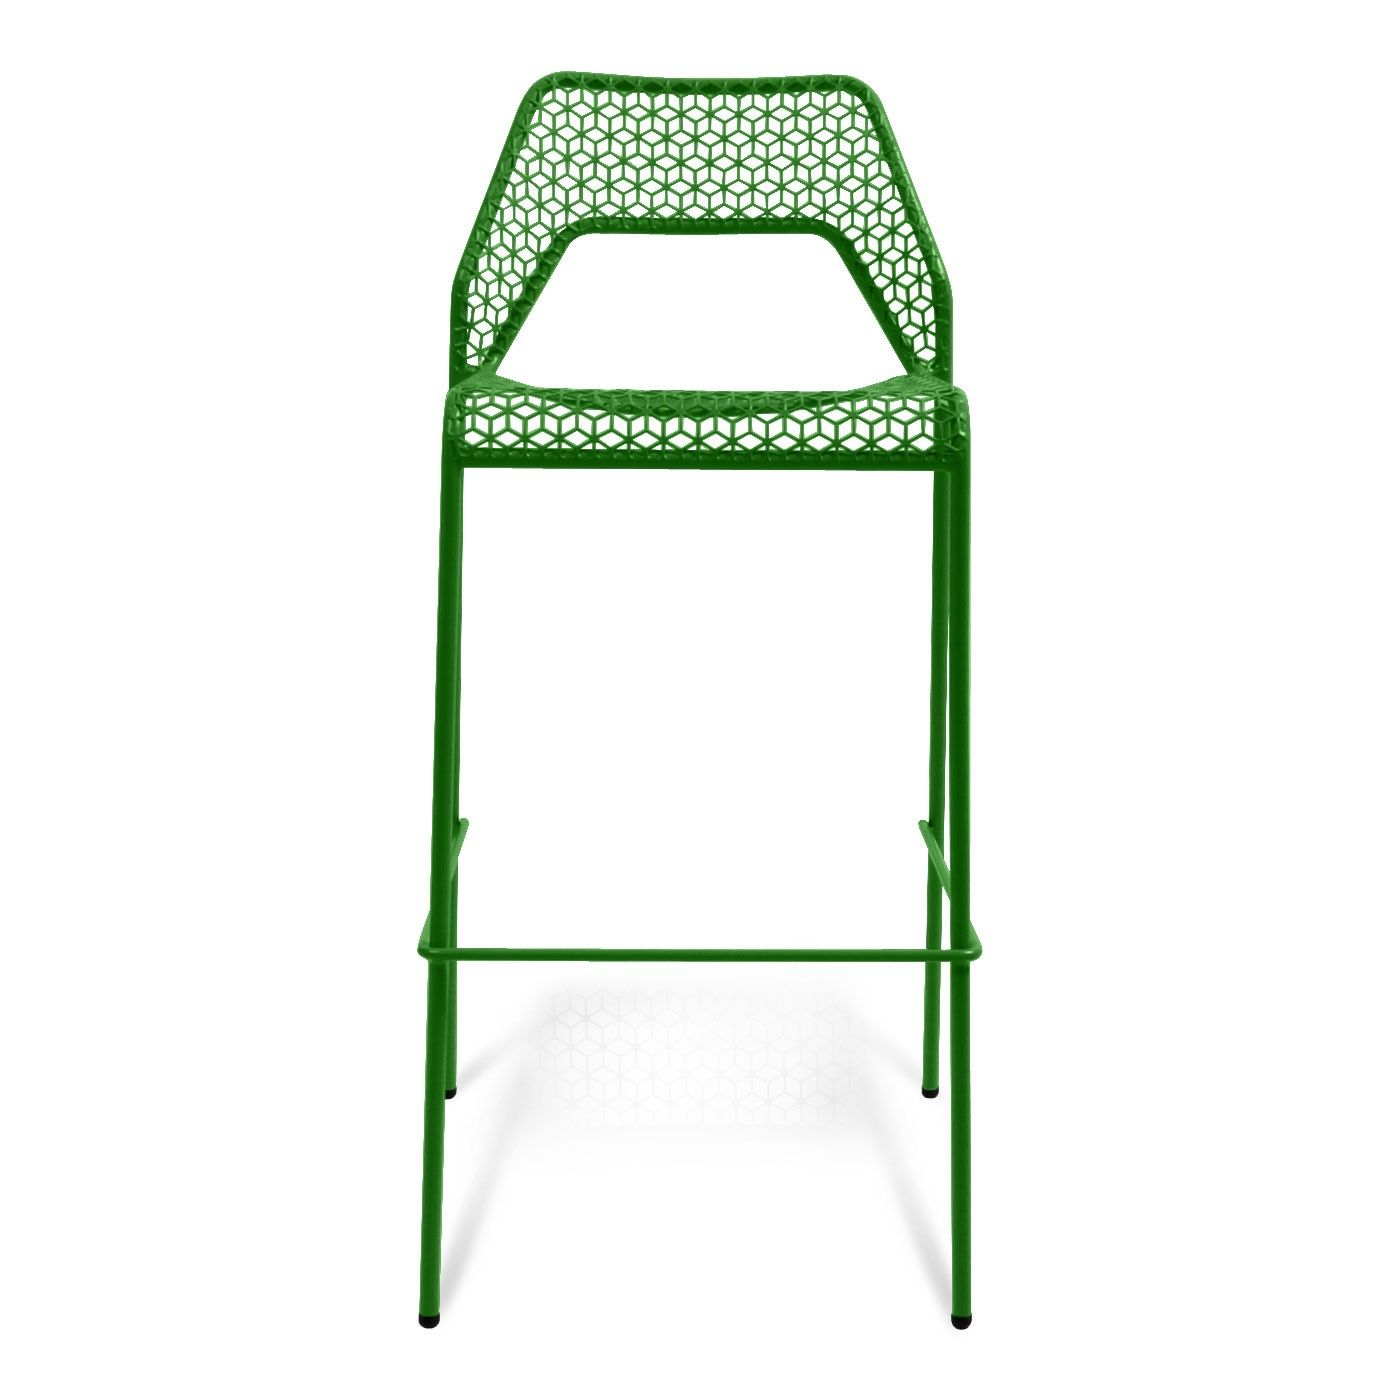 Chipper Outdoor Bar Stool Seeks Derrières For At Home Enjoyment Or Café  Canoodling. Stackable And Suitable For Use Indoors Or Out.